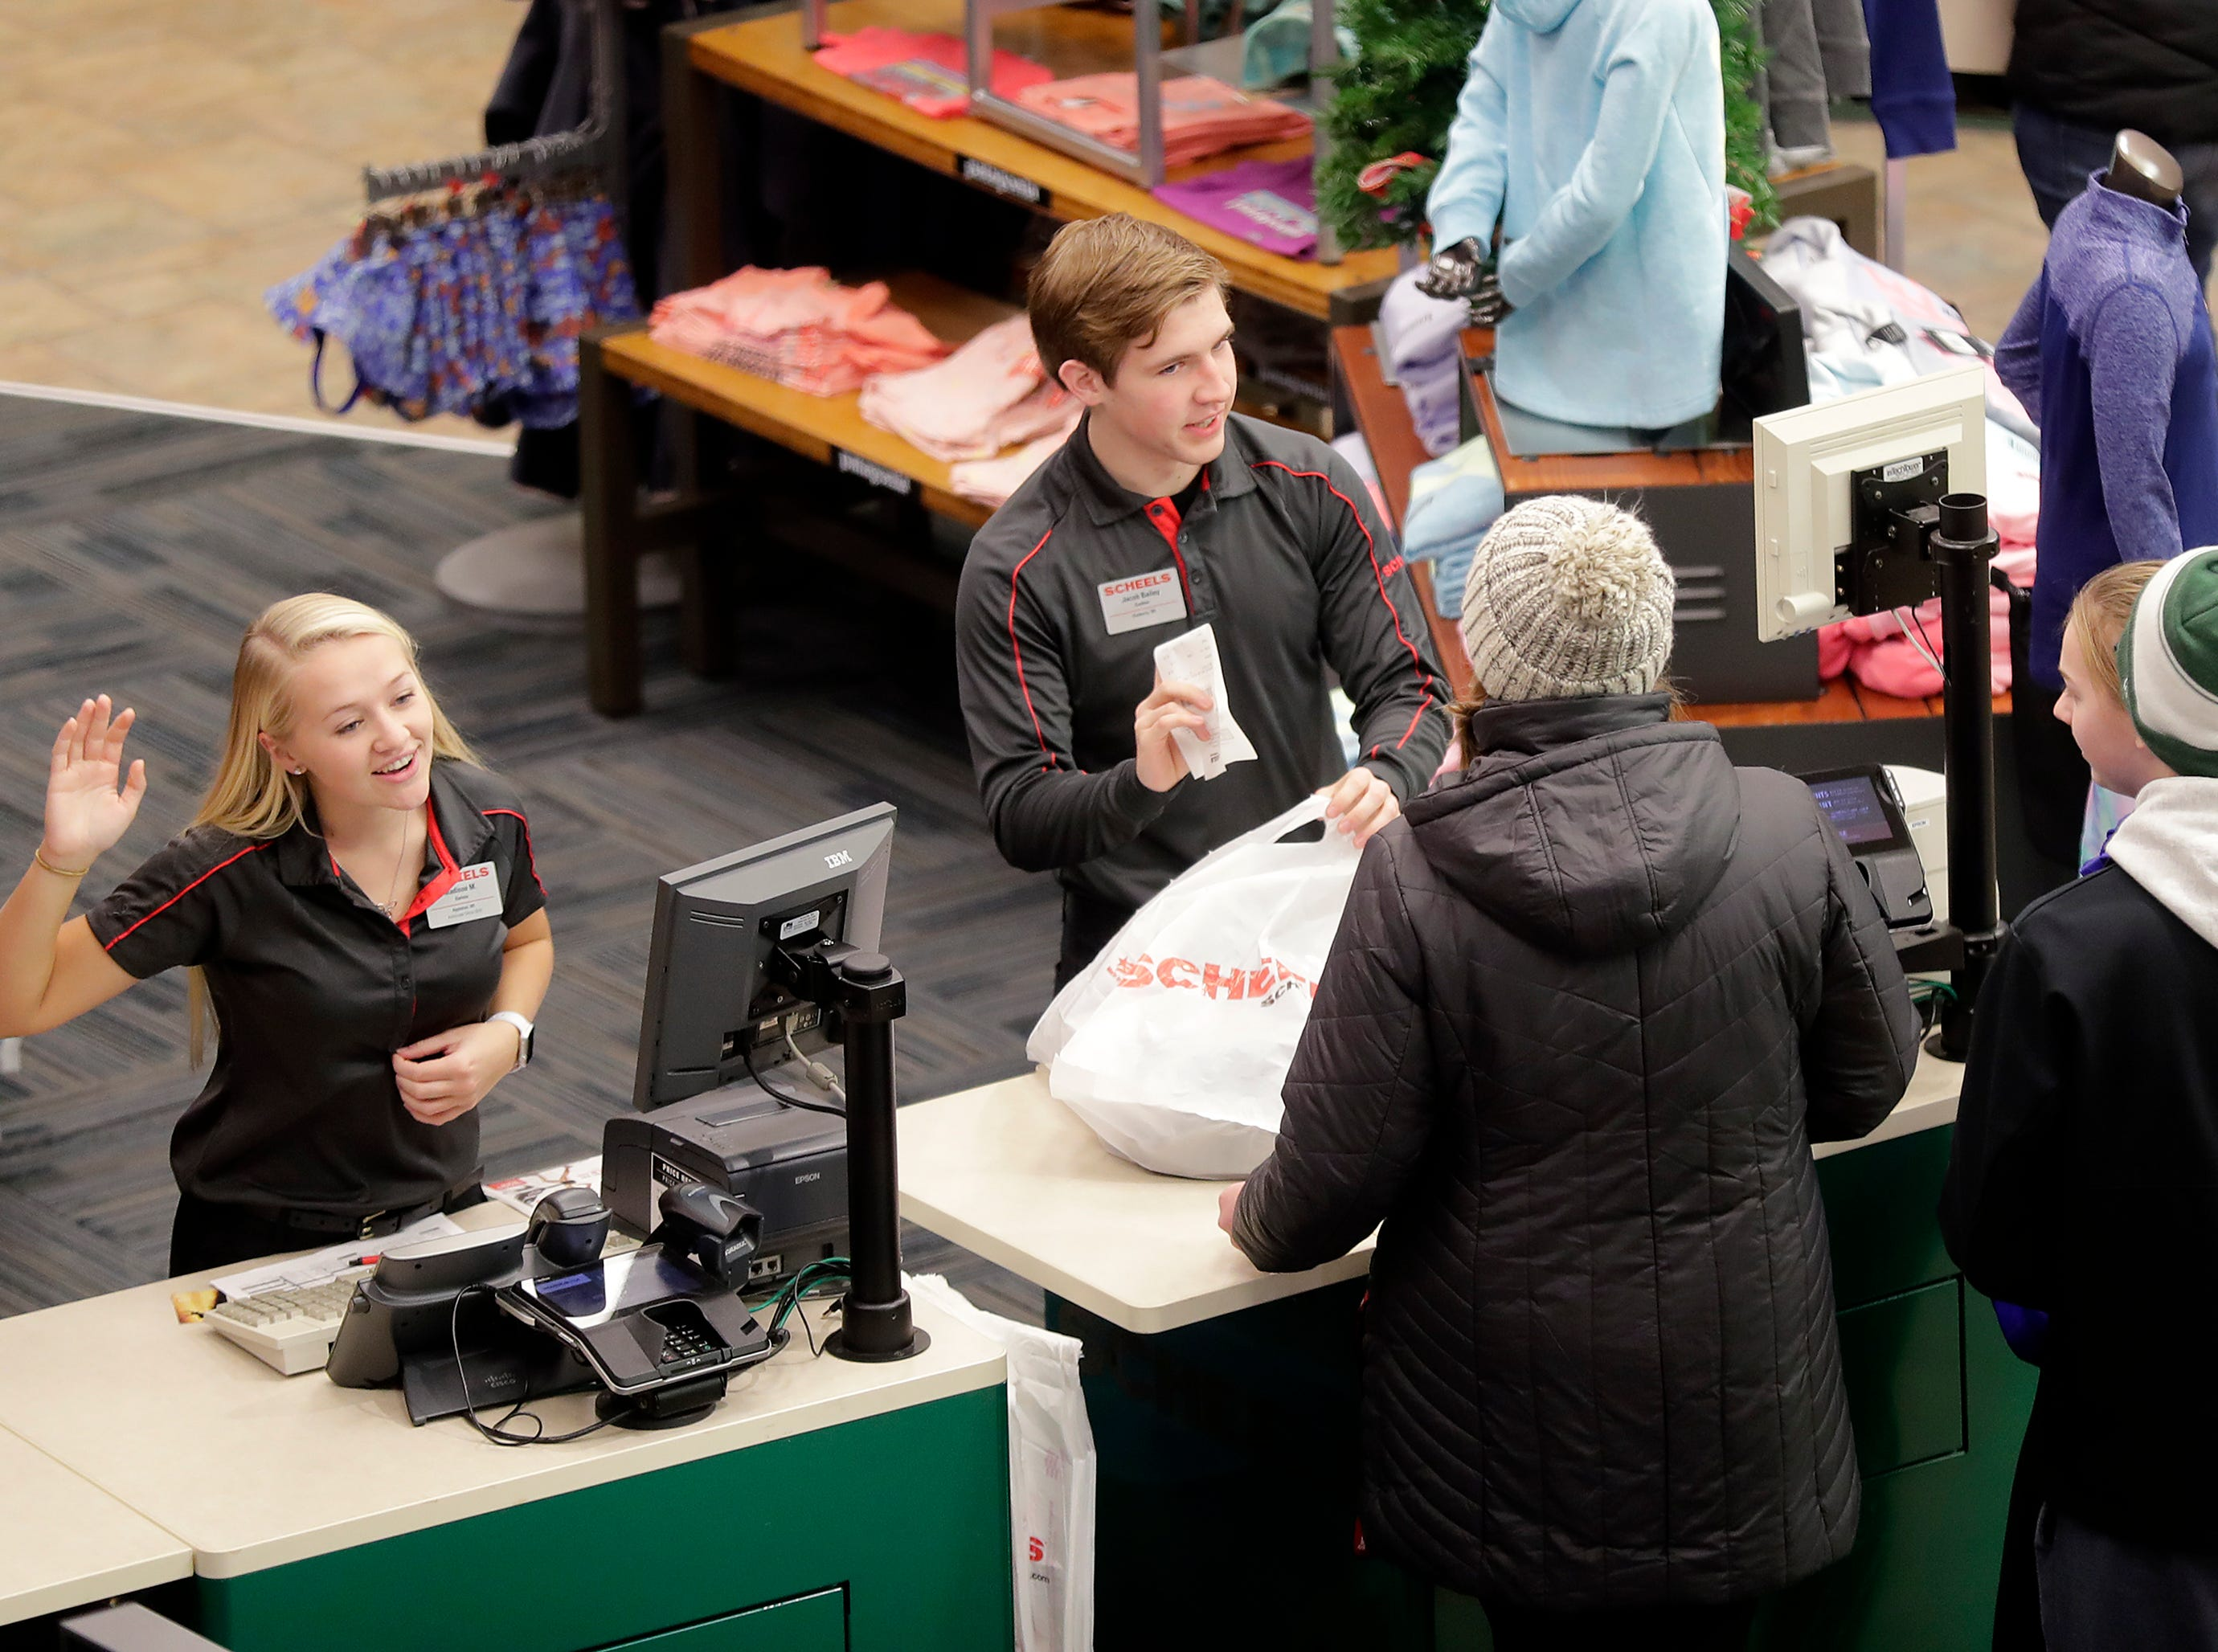 Madison Maloney, left, and Jacob Bailey work the registers as shoppers looking for Black Friday deals at Scheels on Friday, Nov. 23, 2018 in Grand Chute, WisWm. Glasheen/USA TODAY NETWORK-Wisconsin.